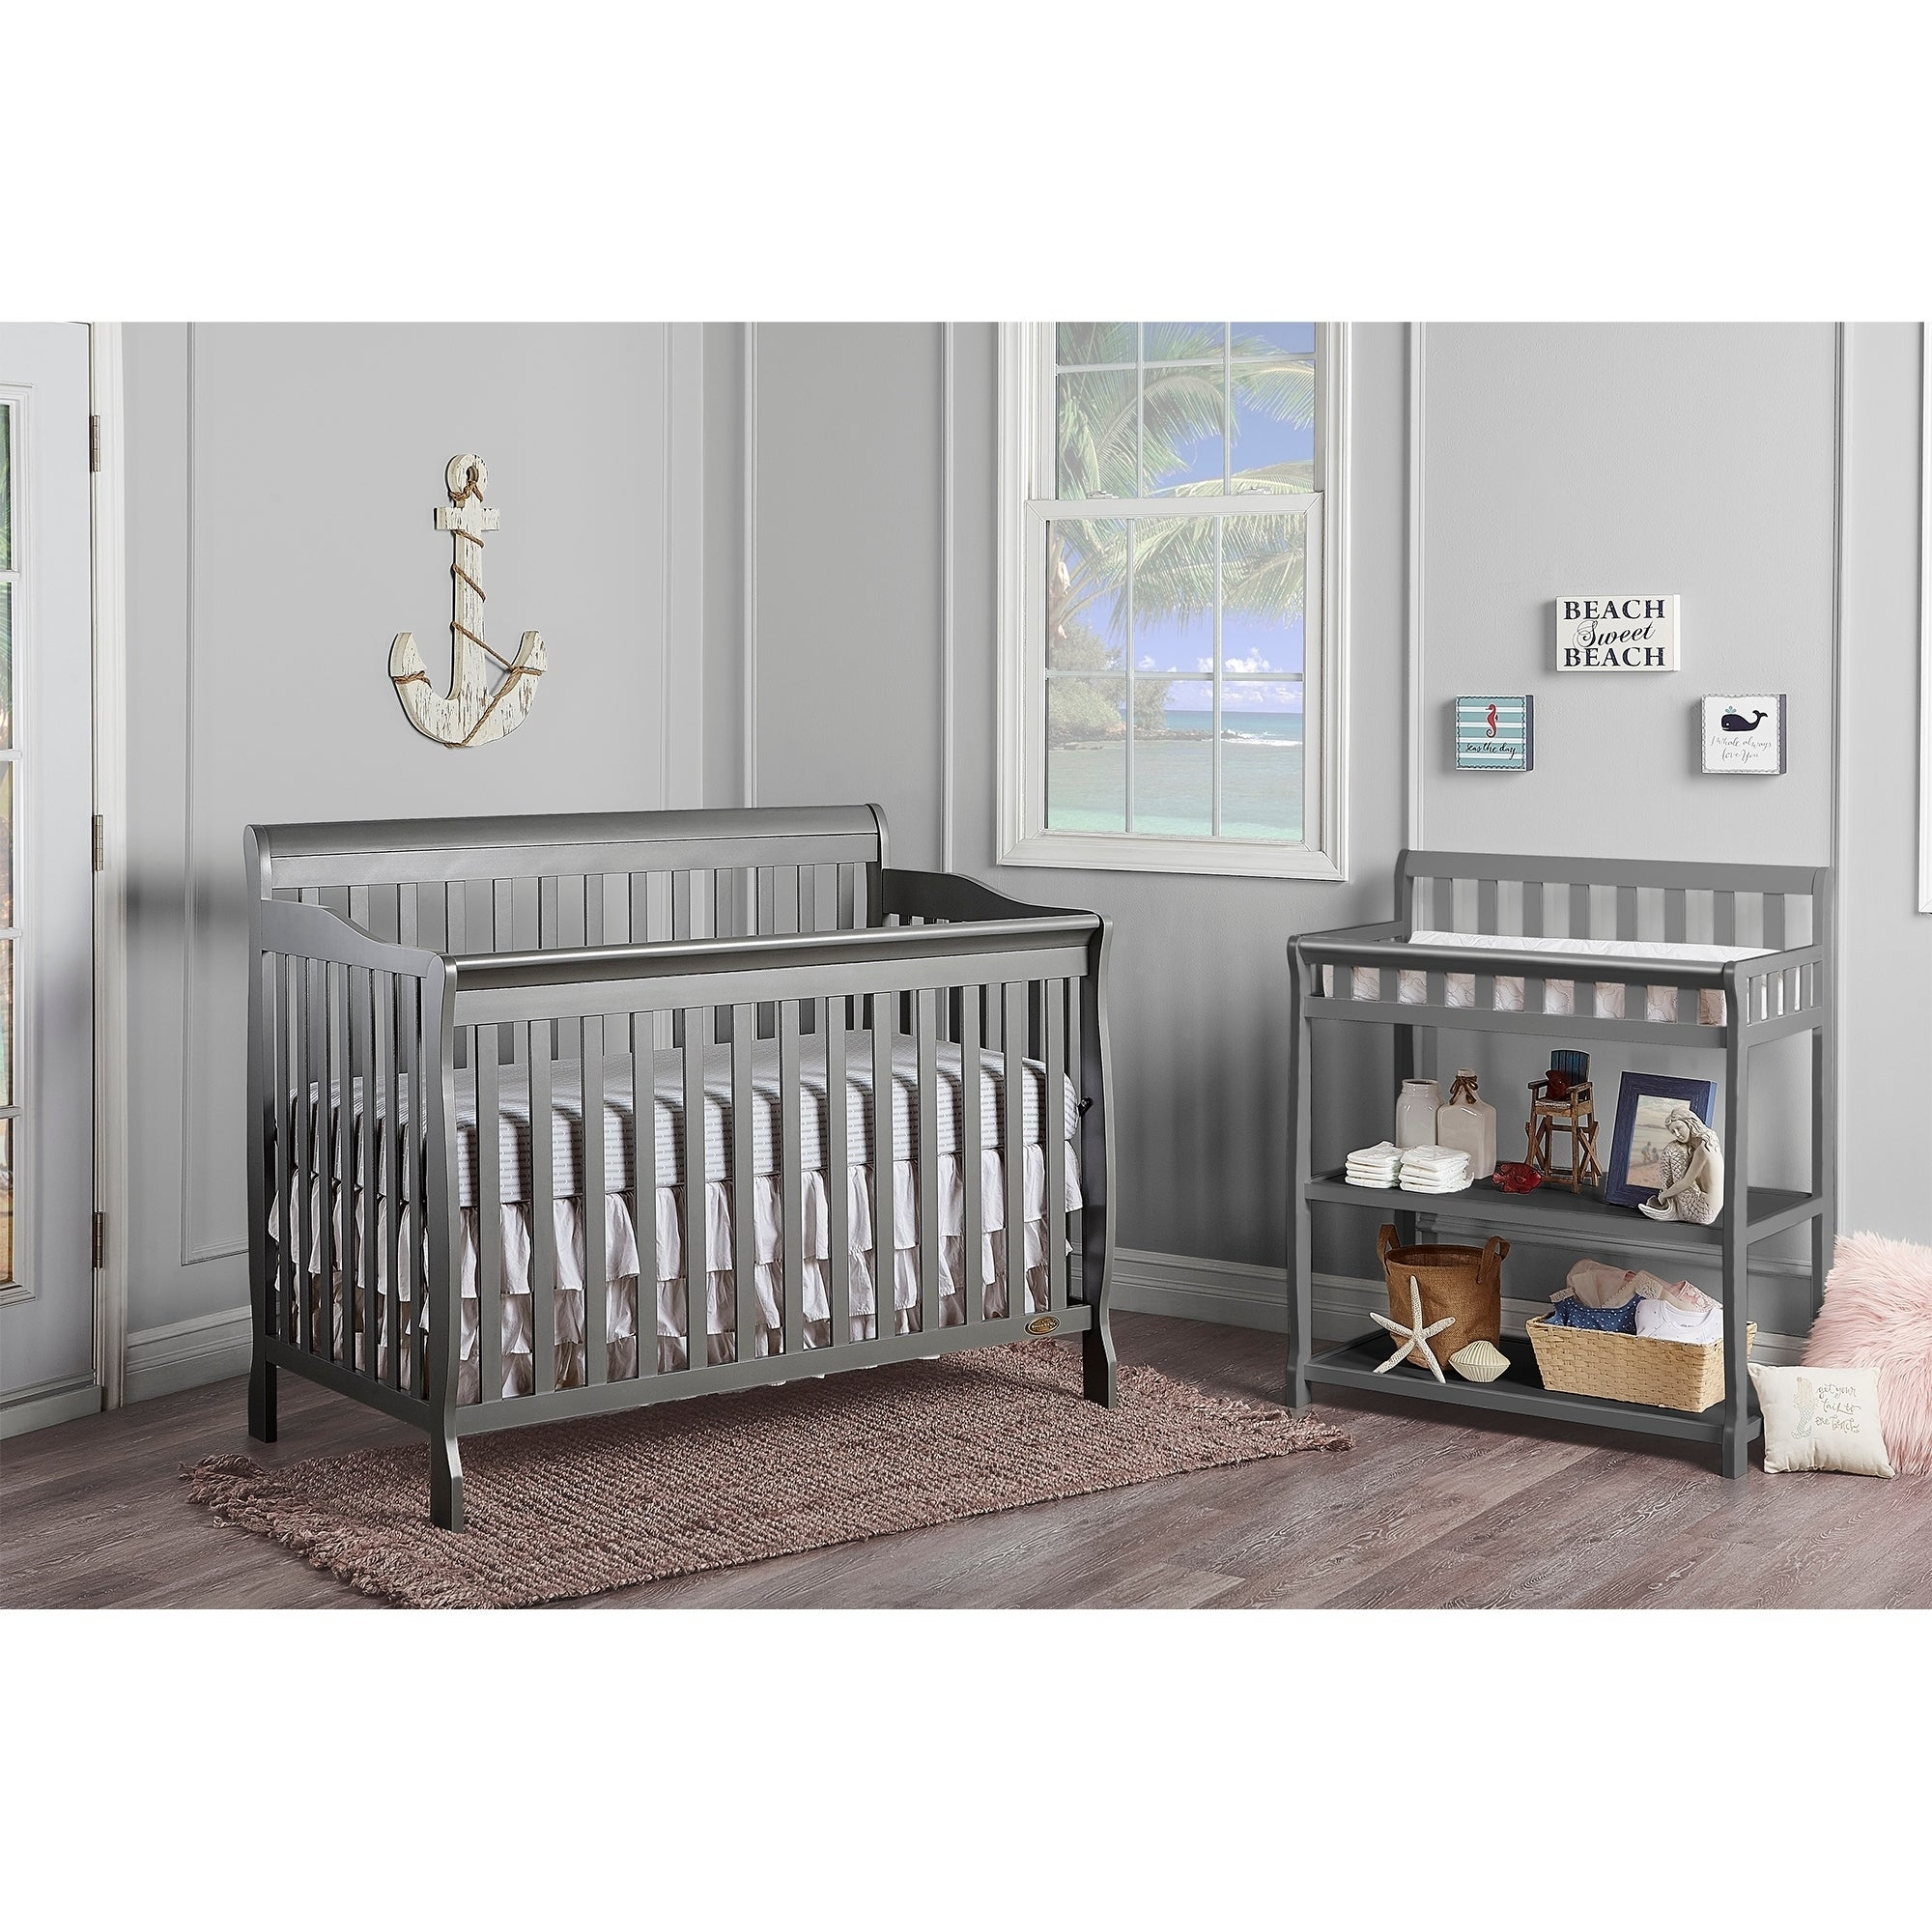 in baby charlotte pdx wayfair convertible crib kids delta children table with cribs changing